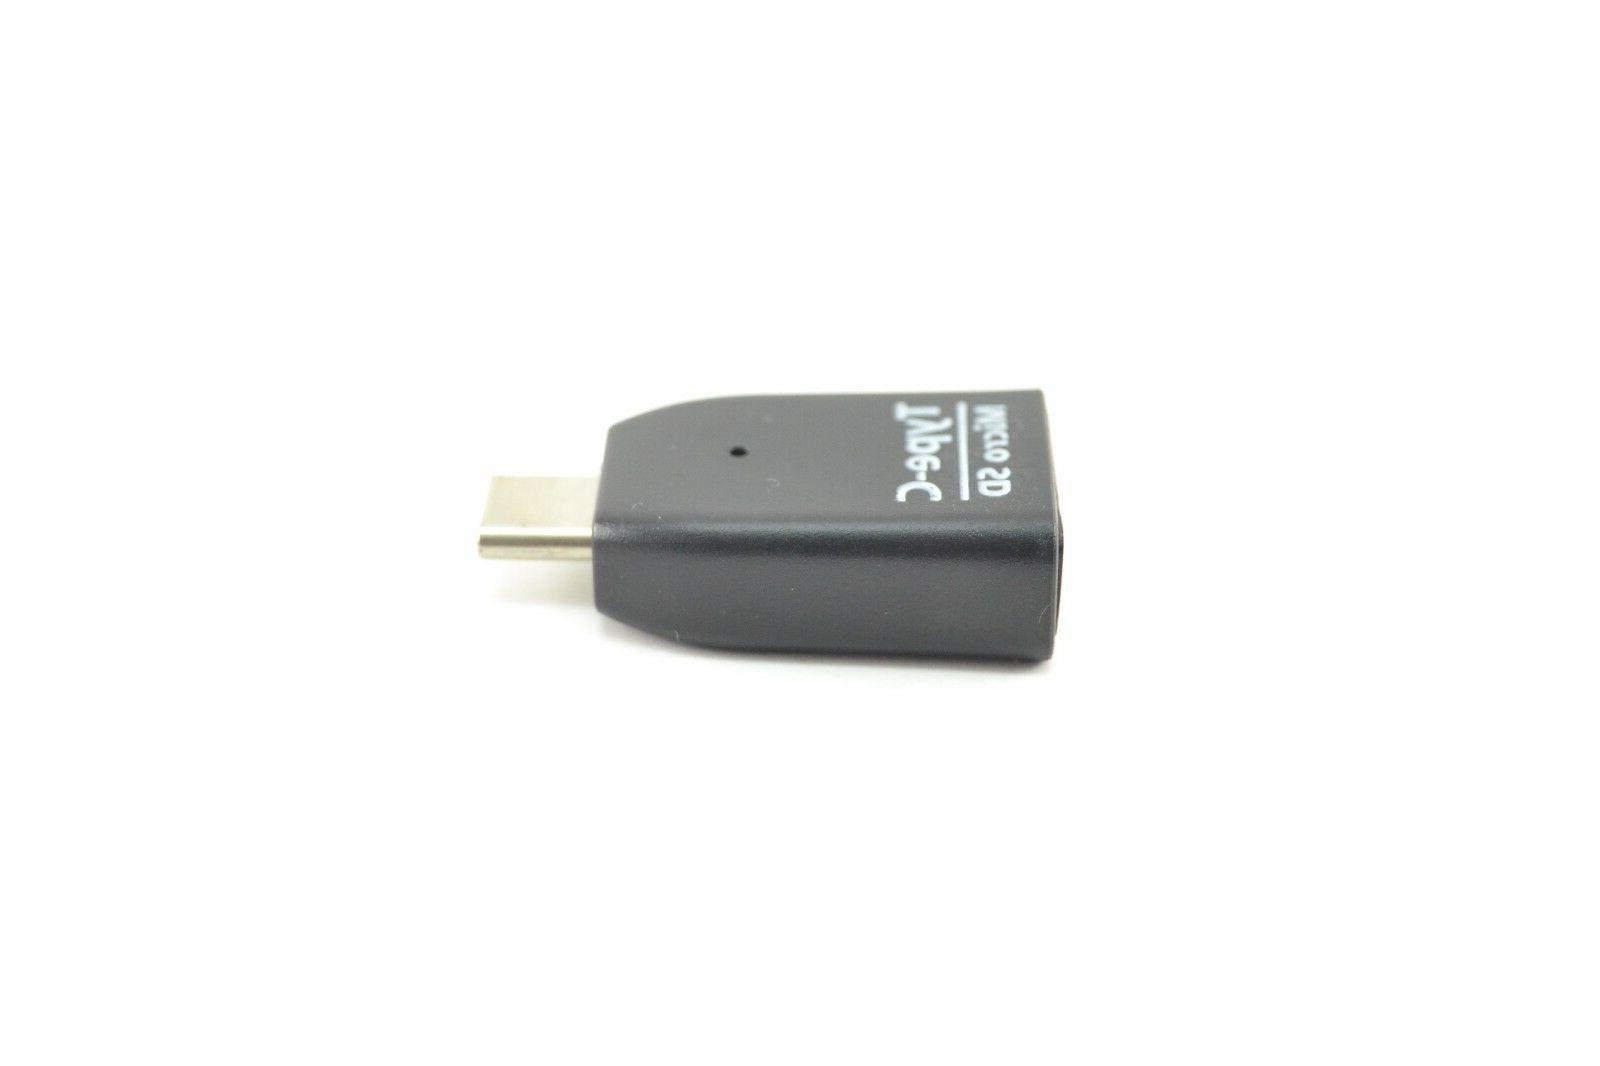 USB USB-C SD Memory Card Adapter for Galaxy S10